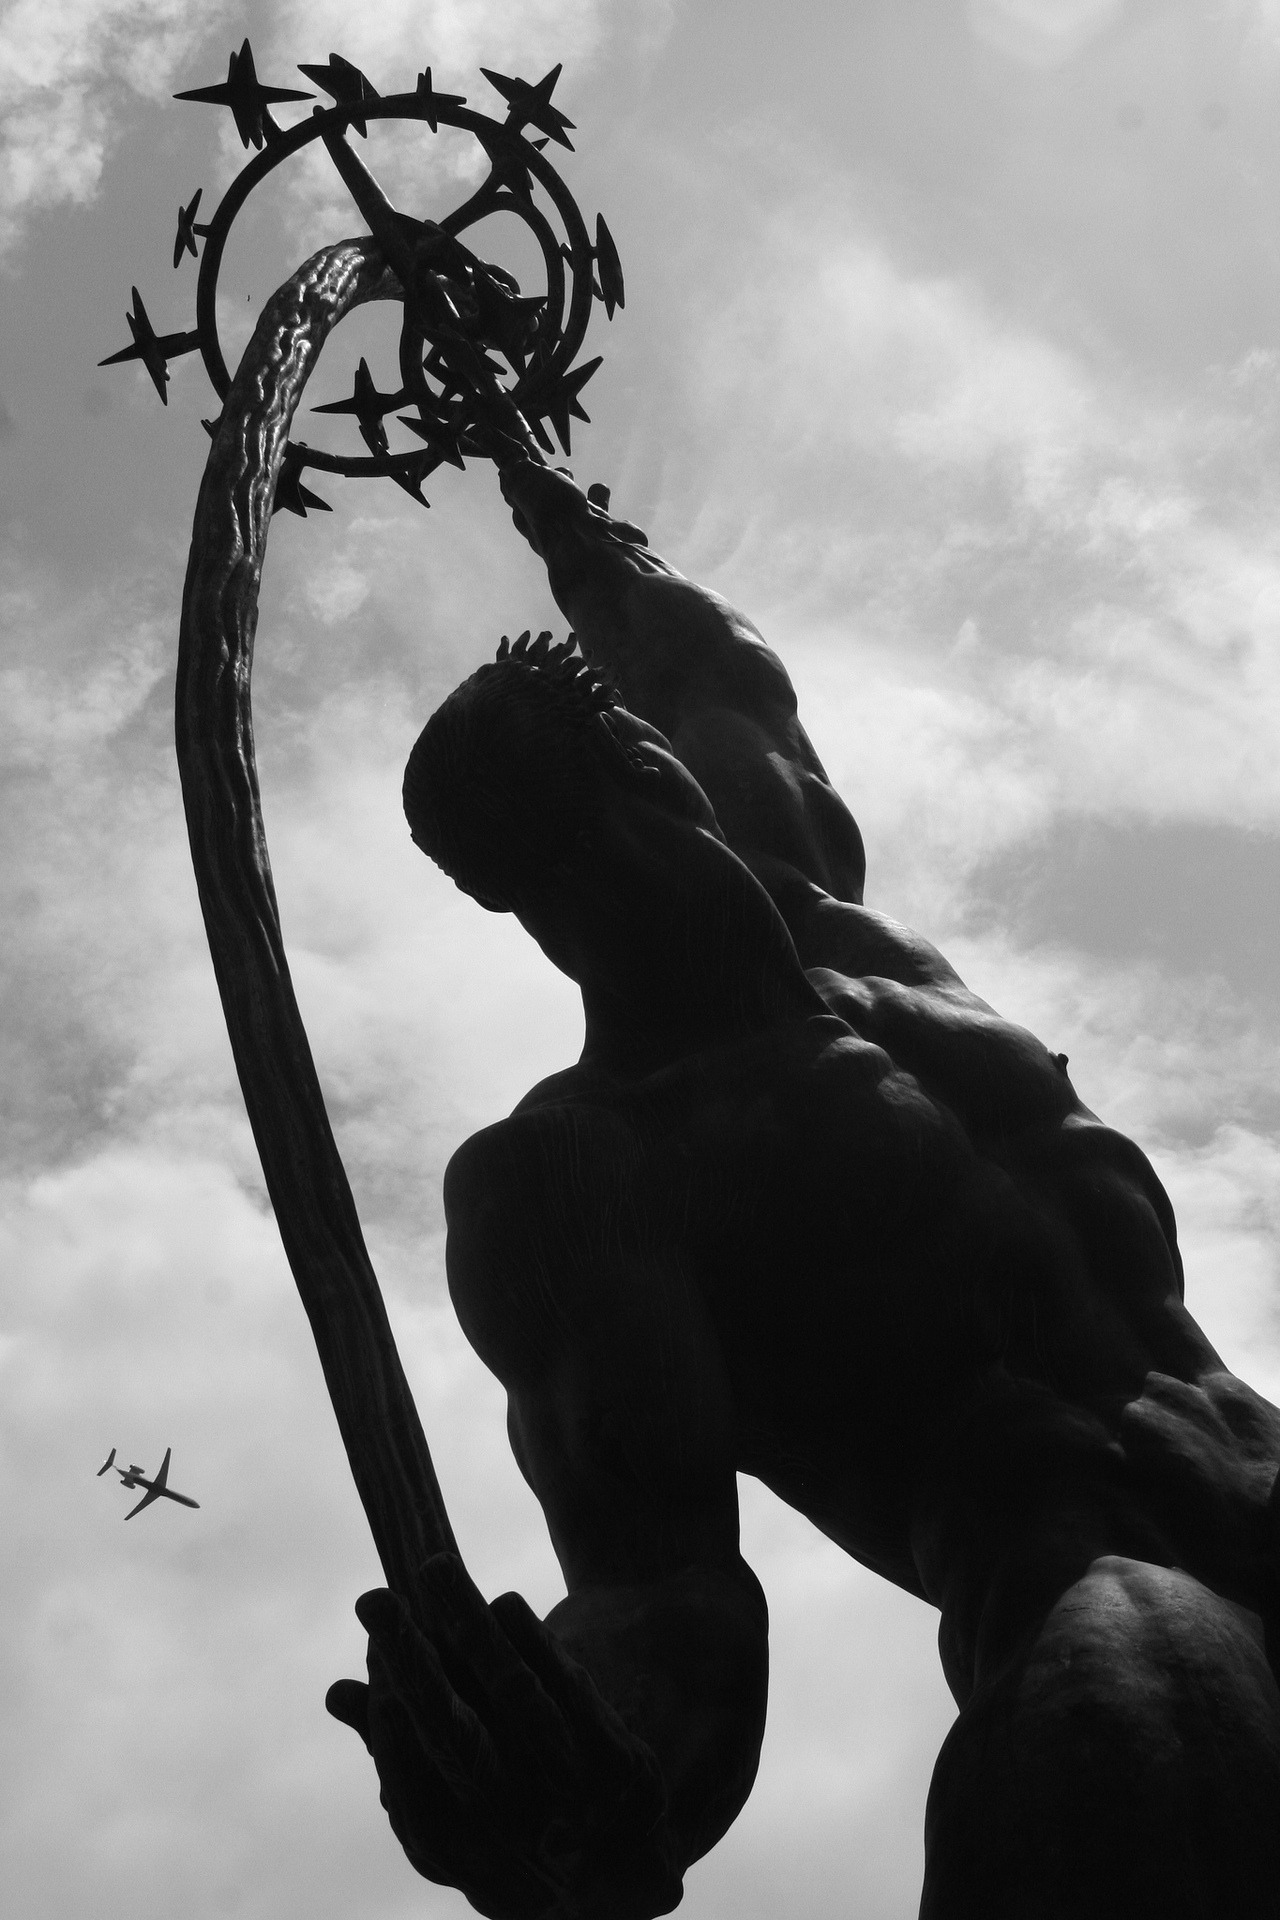 Airplane Meets Rocket Thrower, Flushing Meadows Park